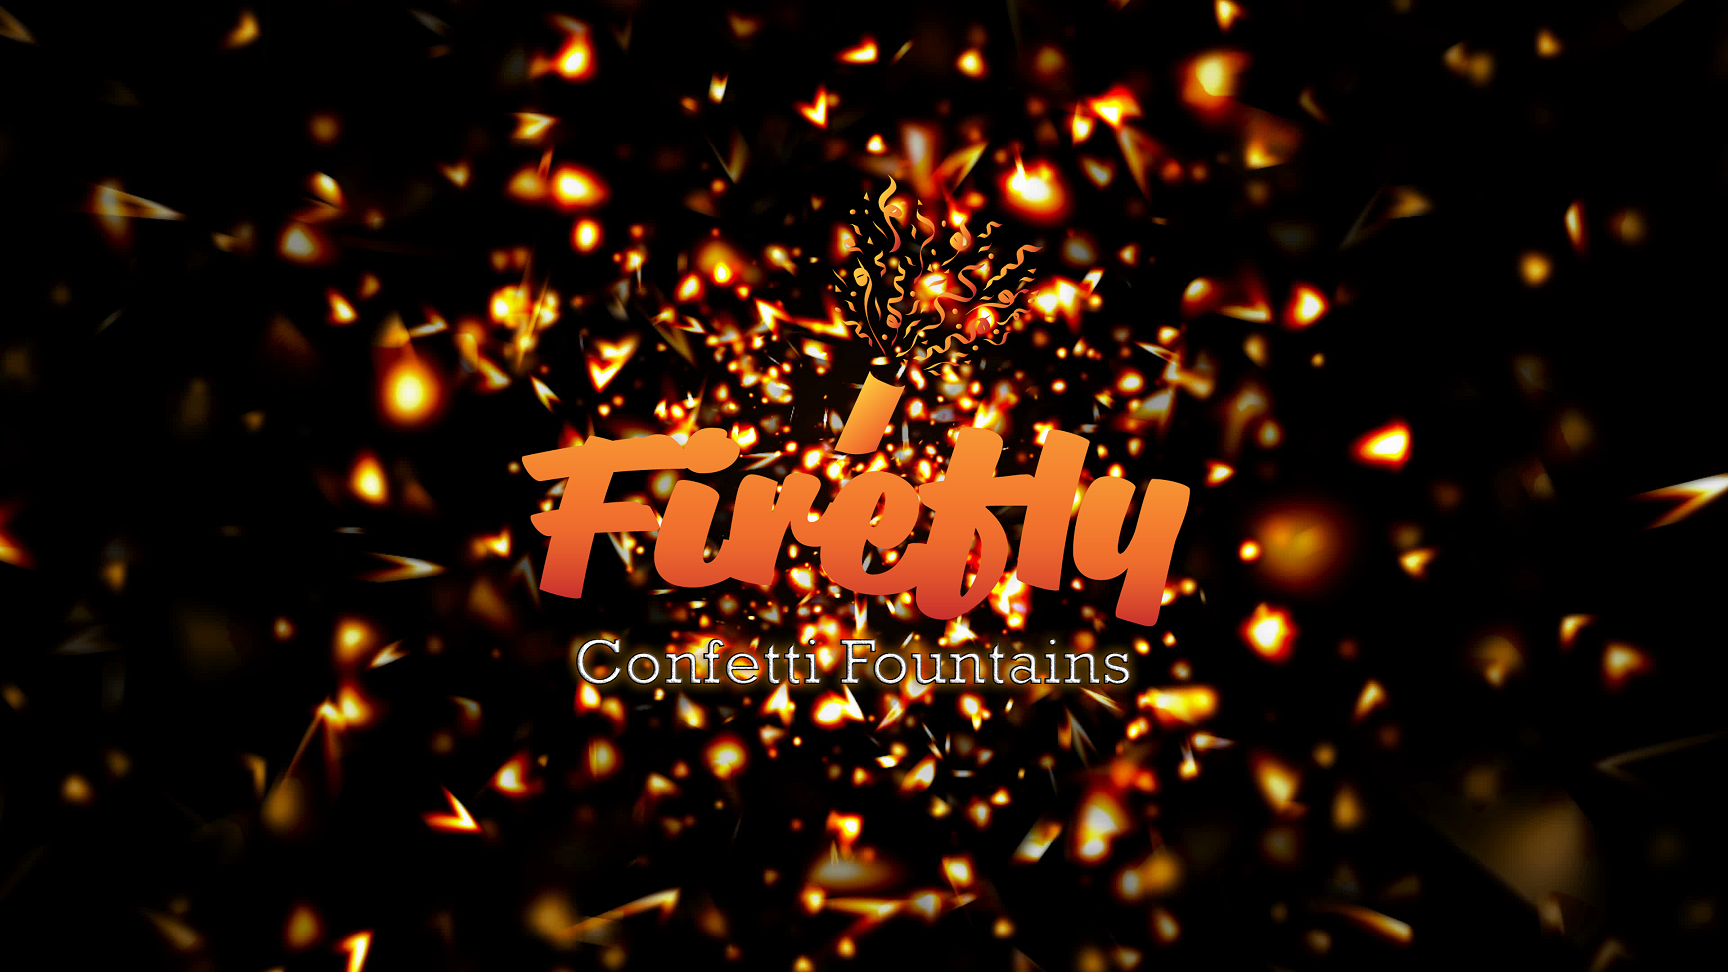 Firefly Confetti Fountains